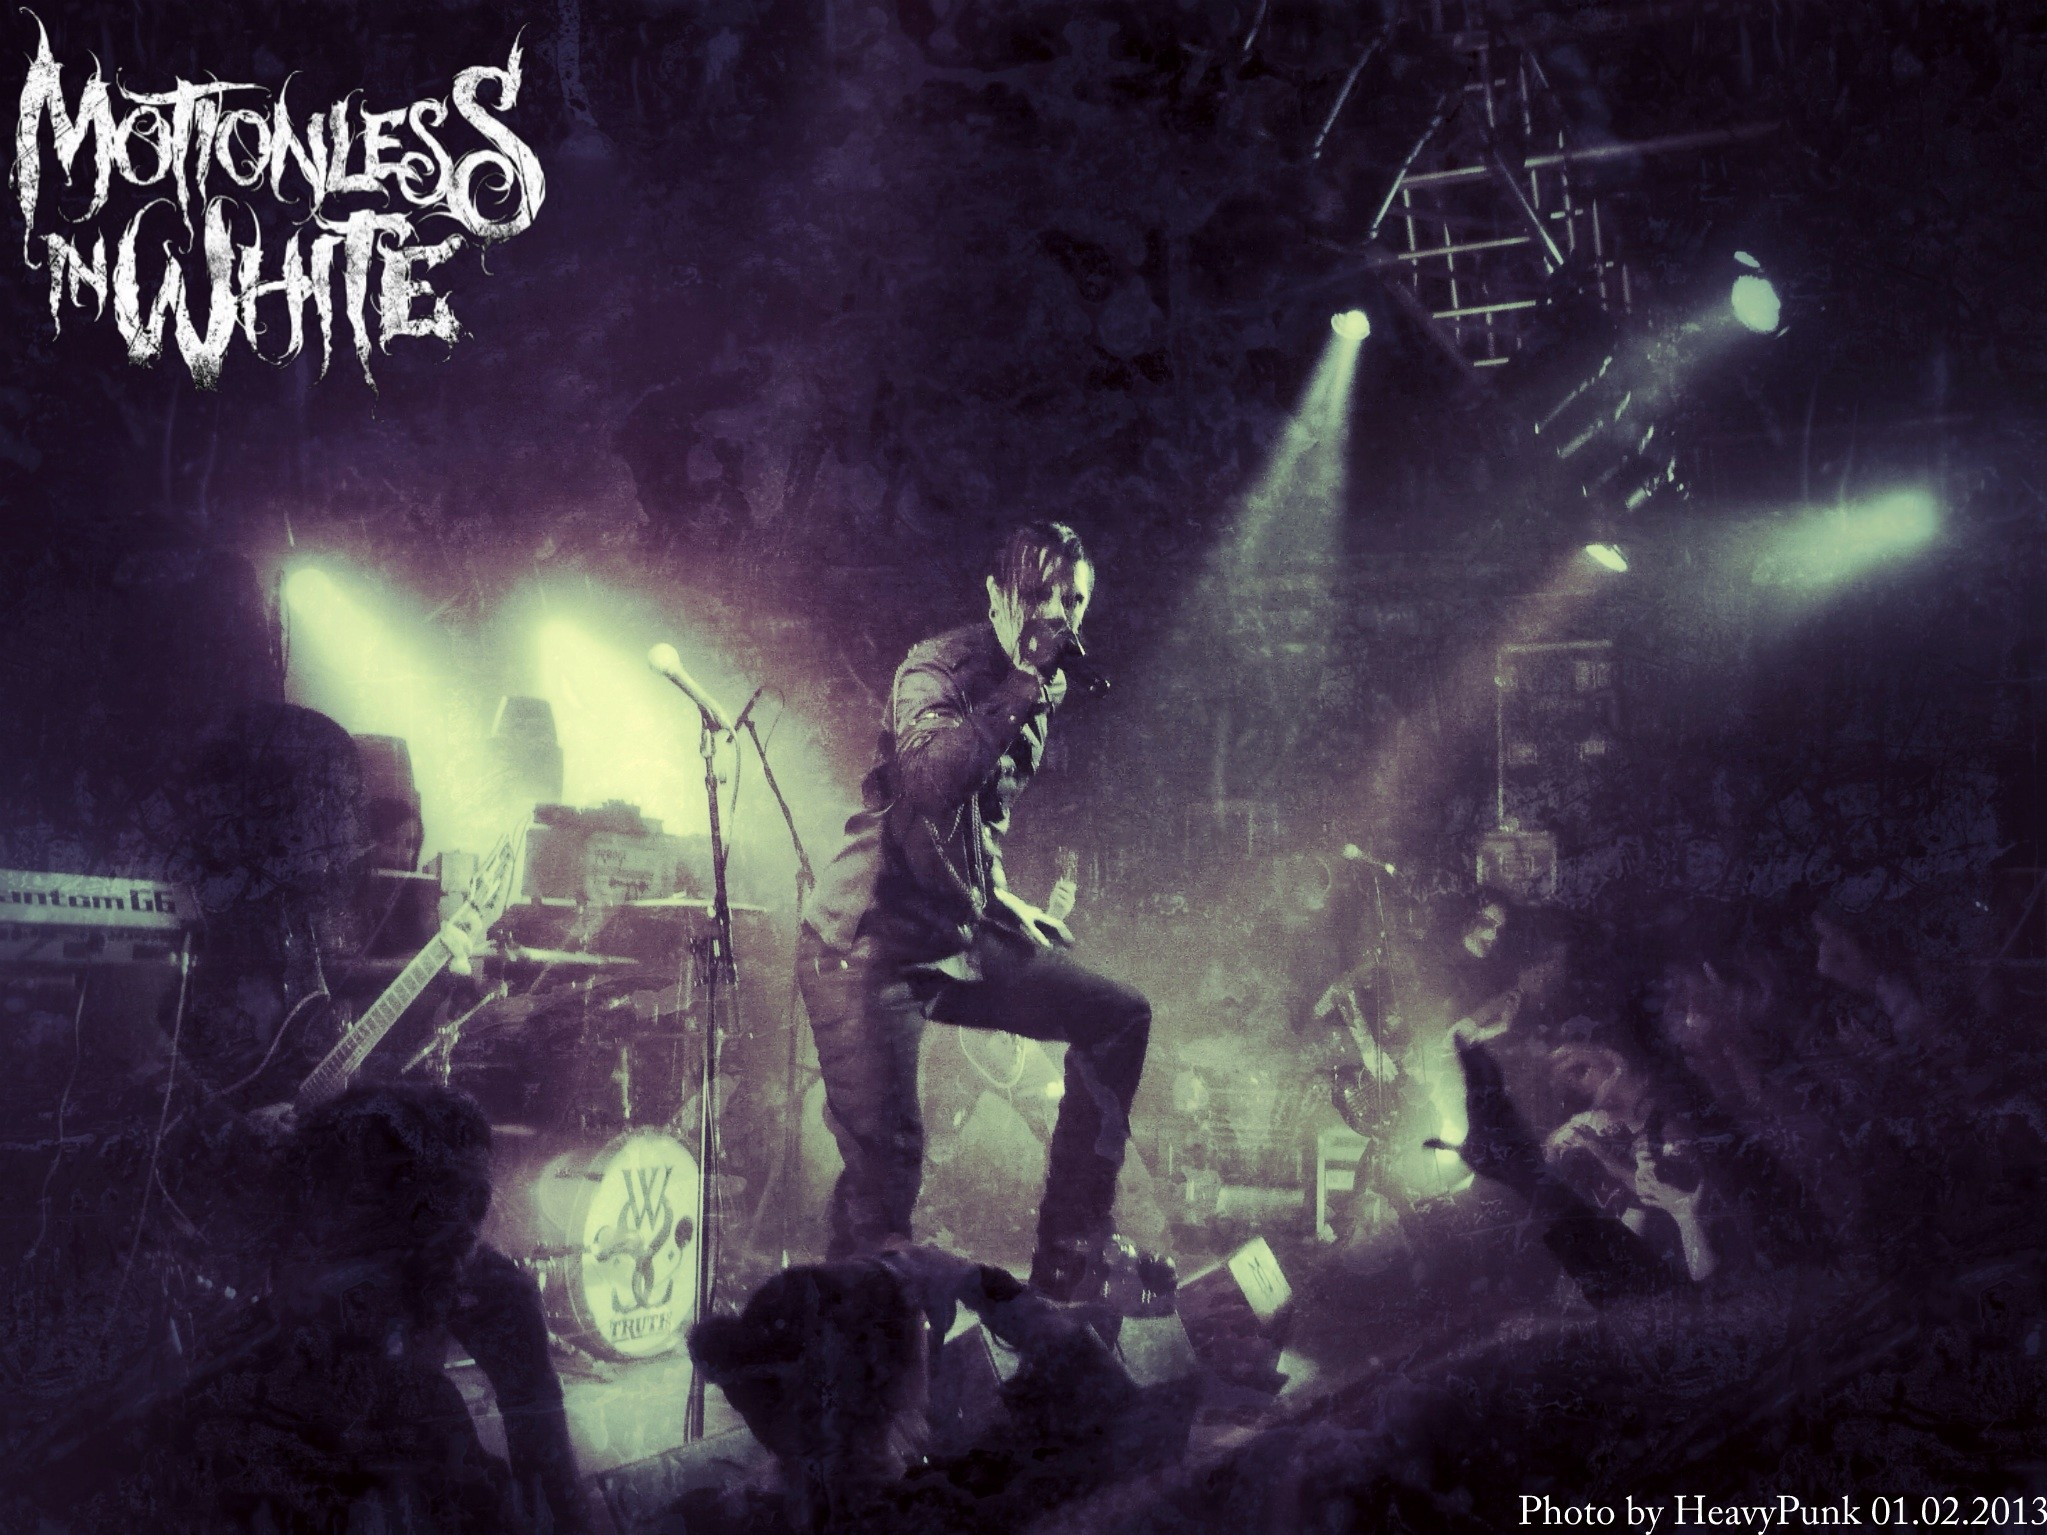 Motionless in White [live in concert] by MaxiMotionless on DeviantArt